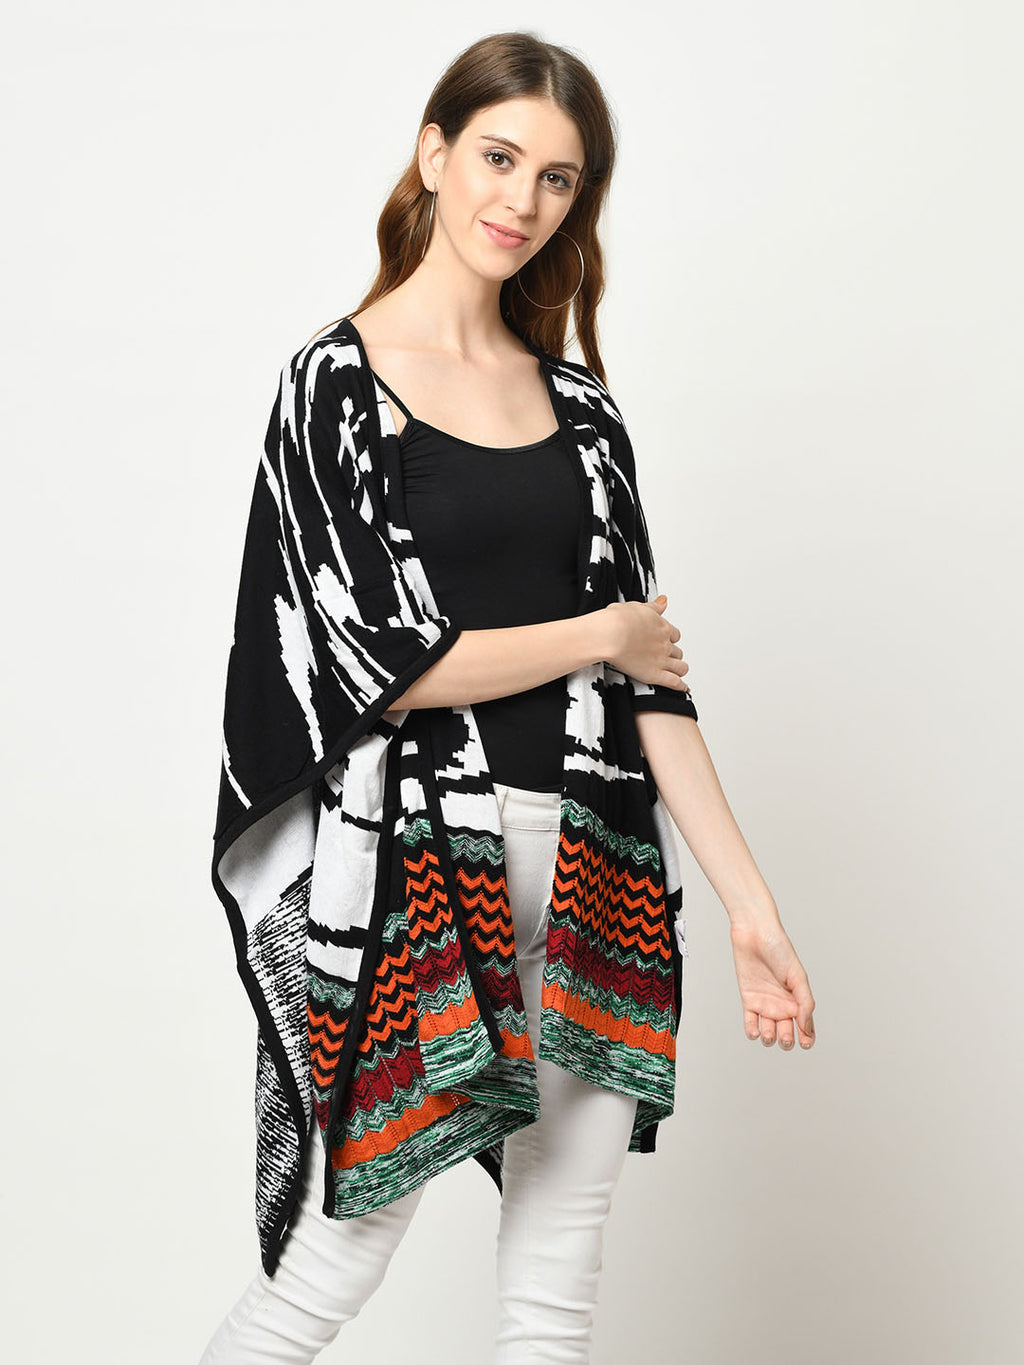 Multi-Pattern Black, White And Orange Shrug - Avsoy